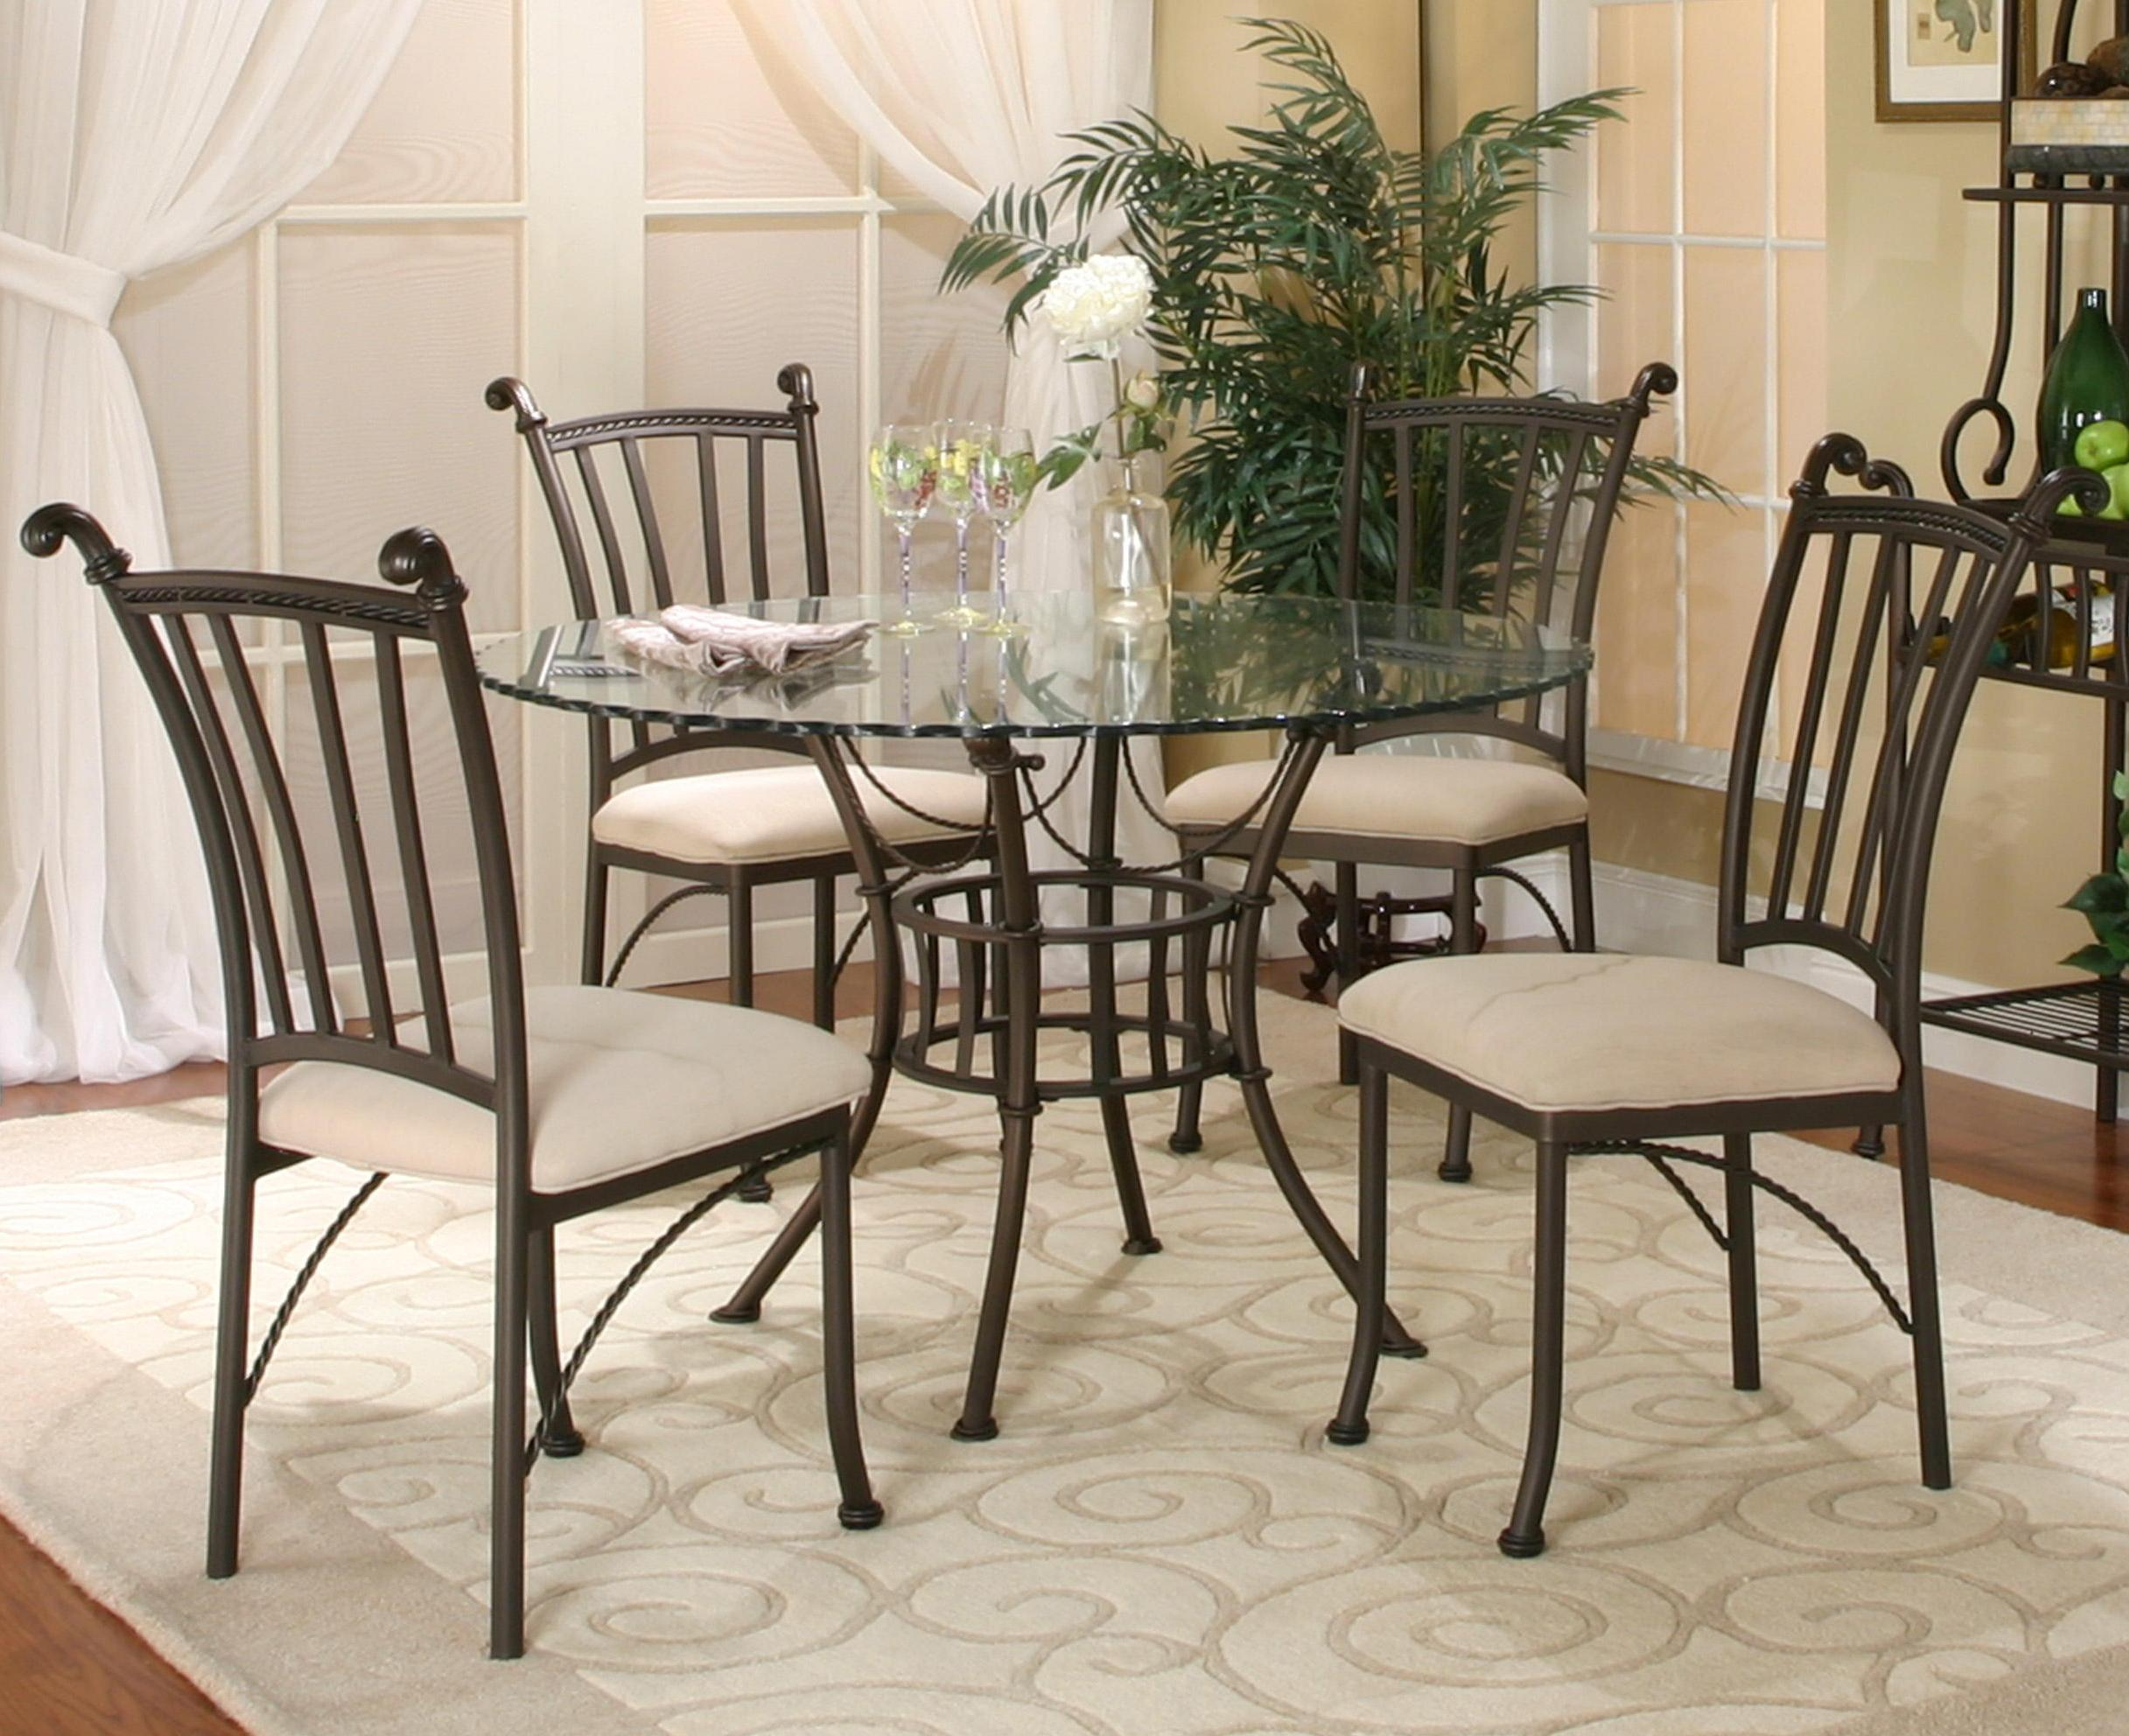 Cramco Inc Denali 5 Piece Round Glass Table With Chairs Corner Furniture Dining 5 Piece Set